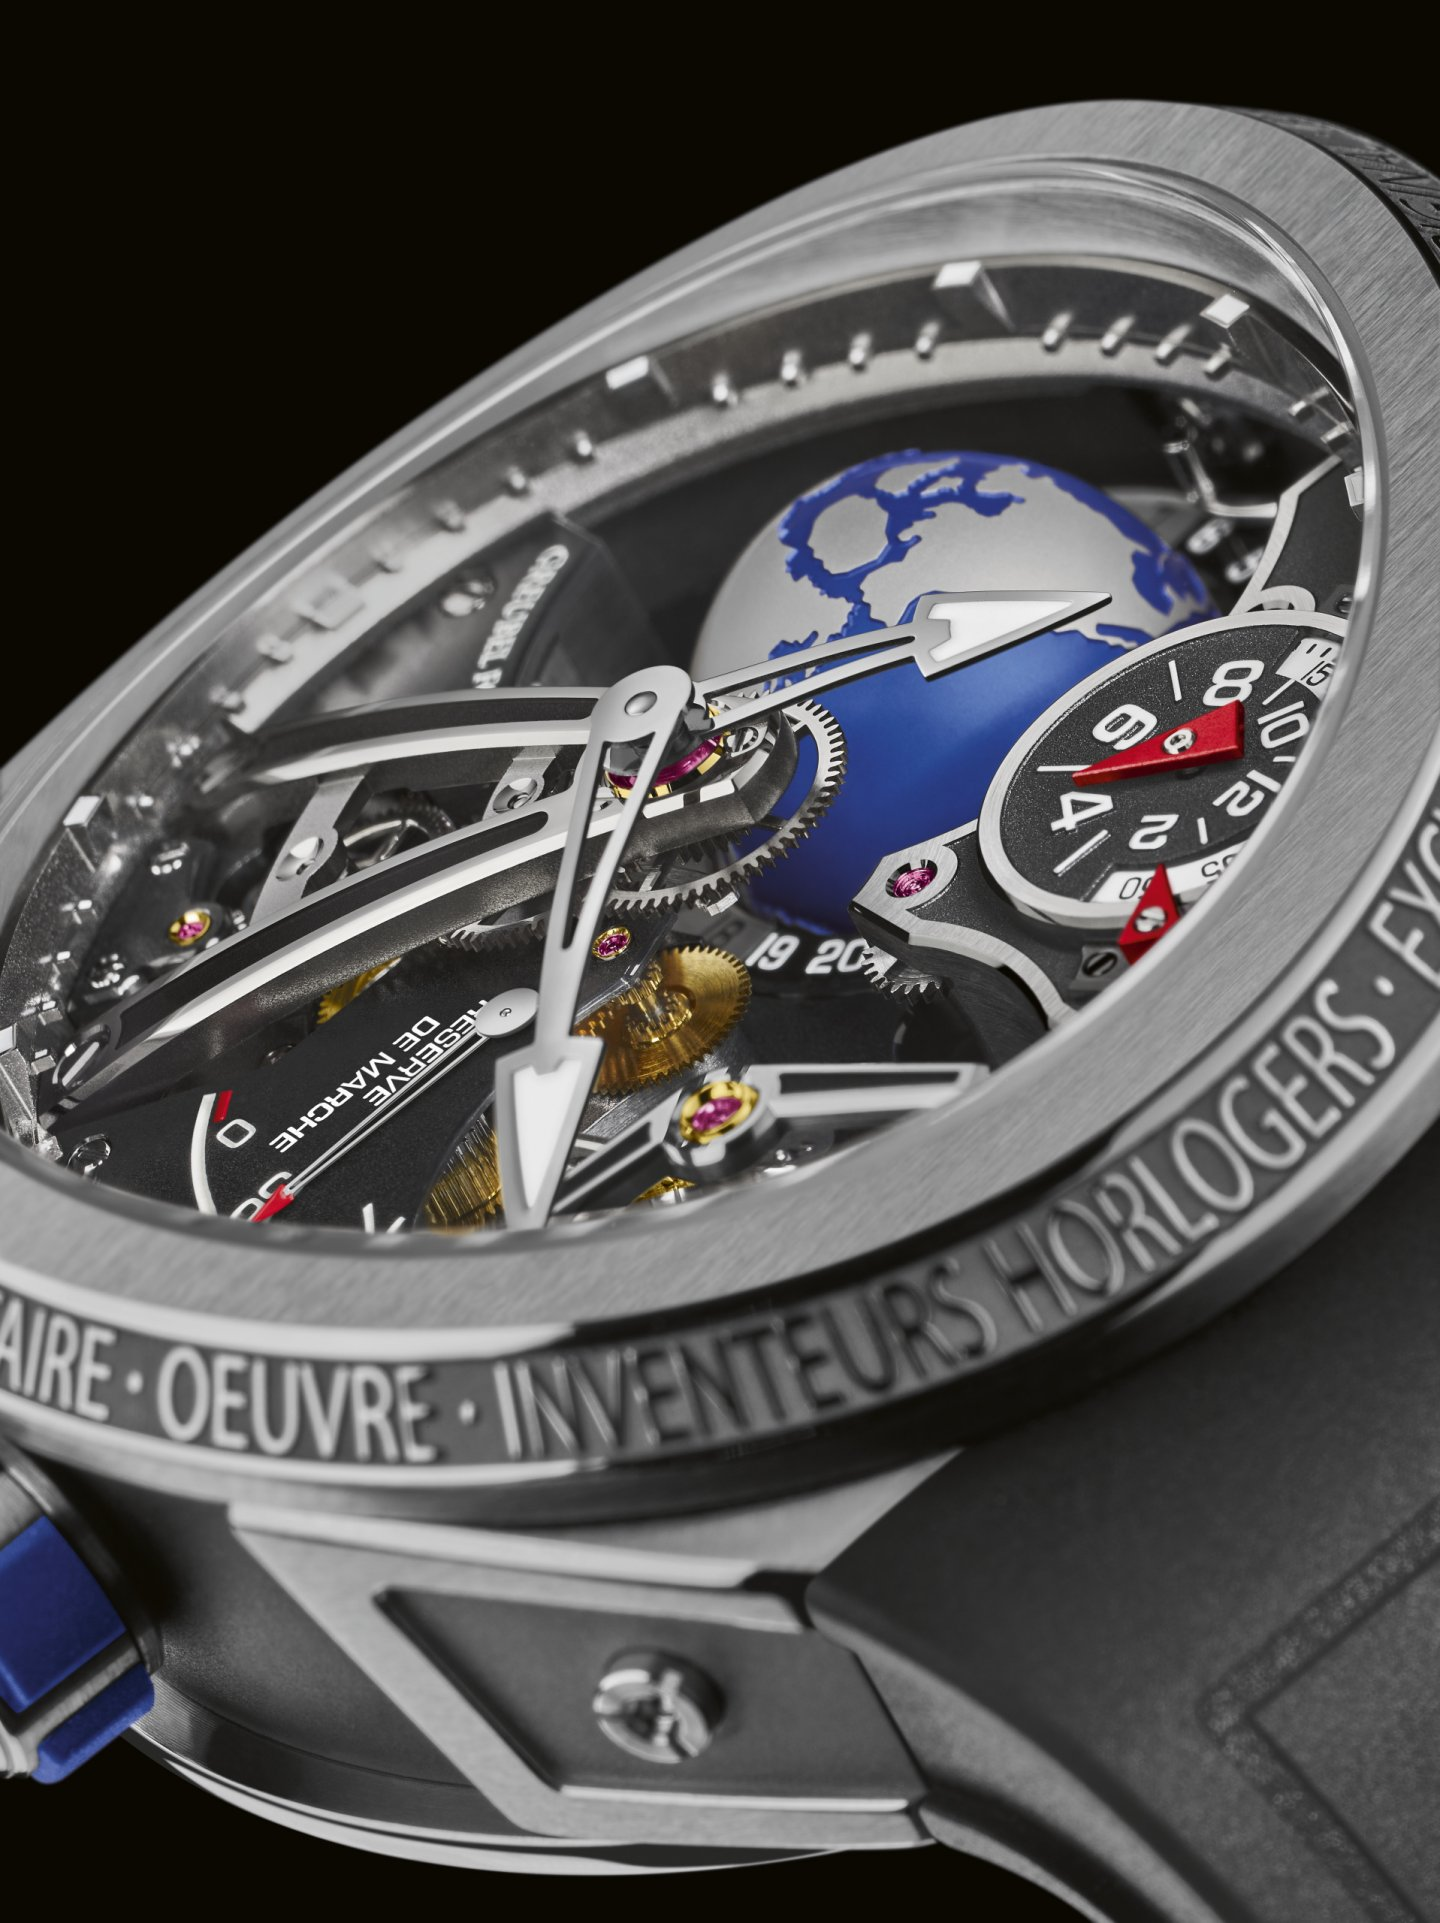 GREUBEL FORSEY 初の防水性能を備えた『GMT スポーツ』